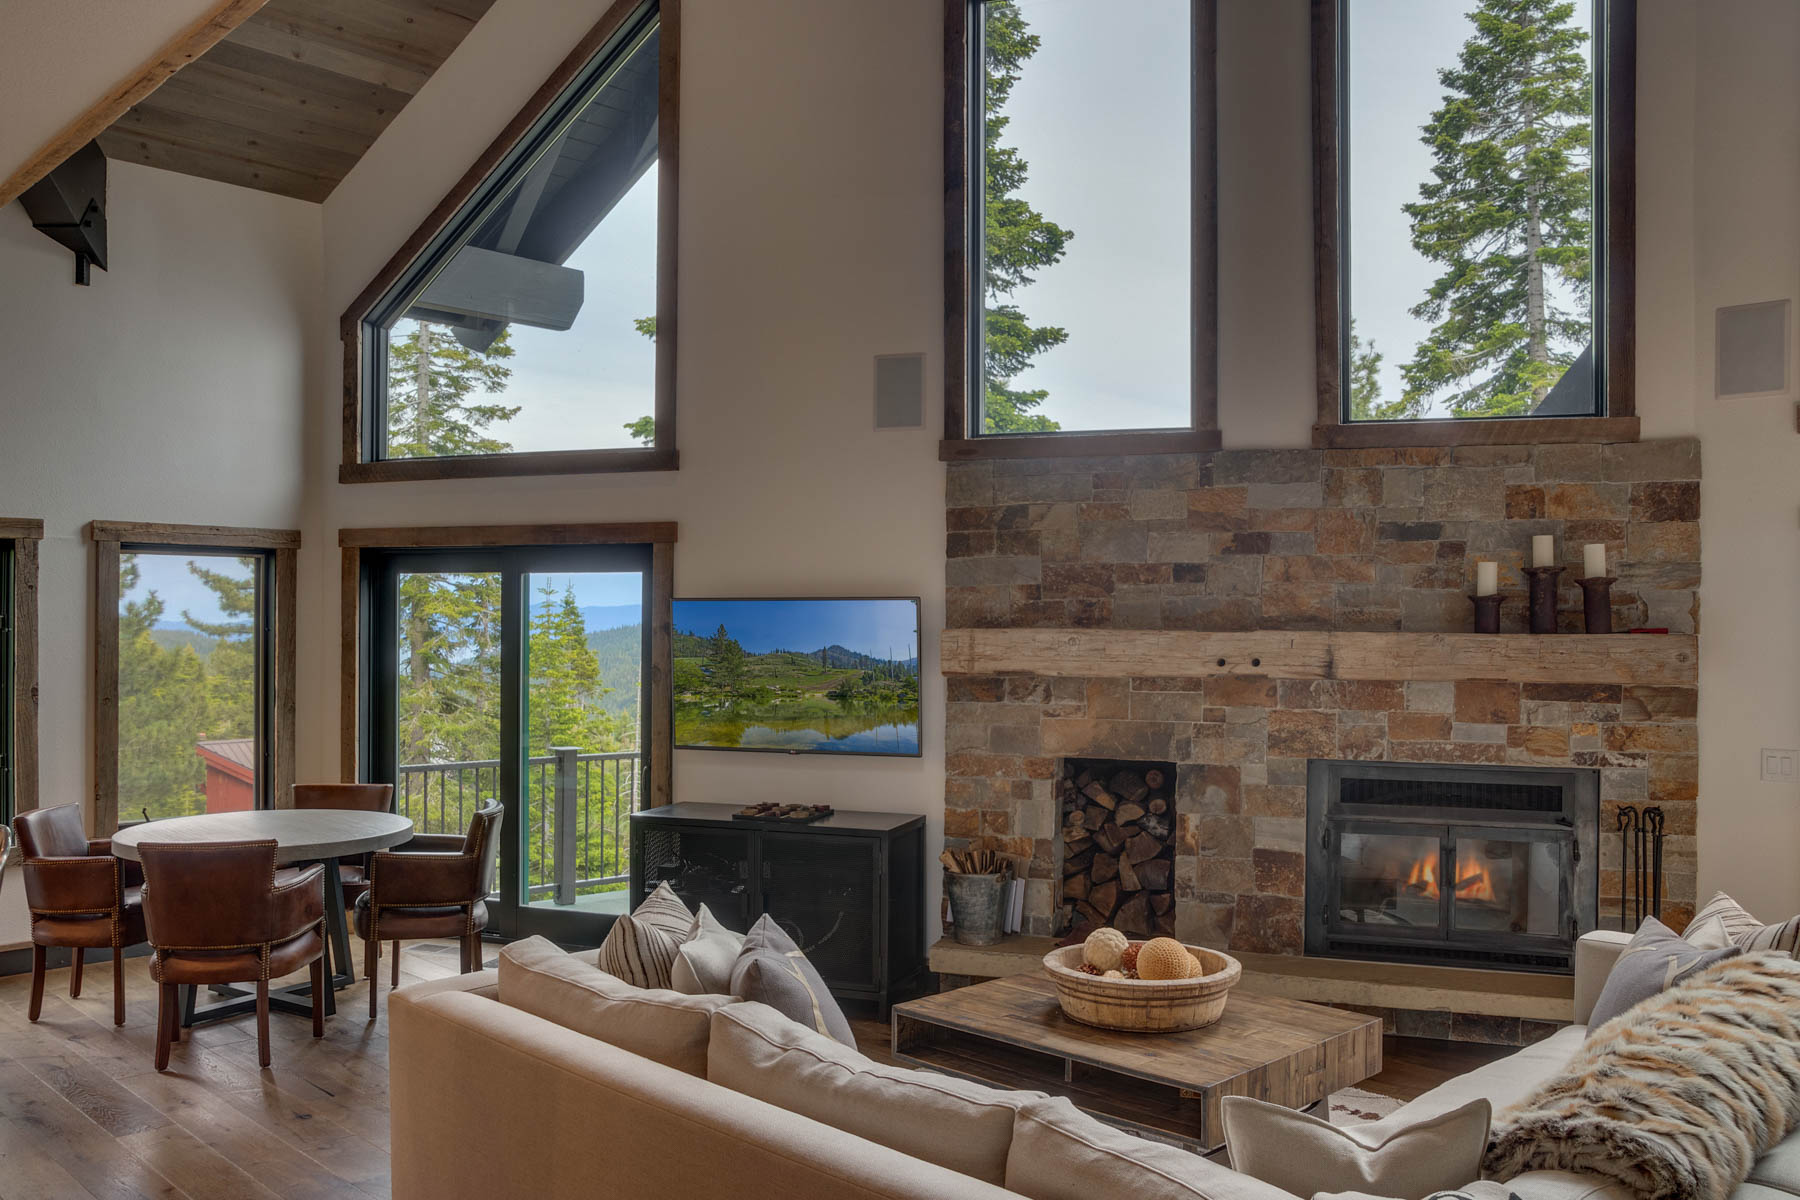 Additional photo for property listing at 4104 Verbier Rd., Tahoe City, CA 4104 Verbier Road Tahoe City, California 96145 United States